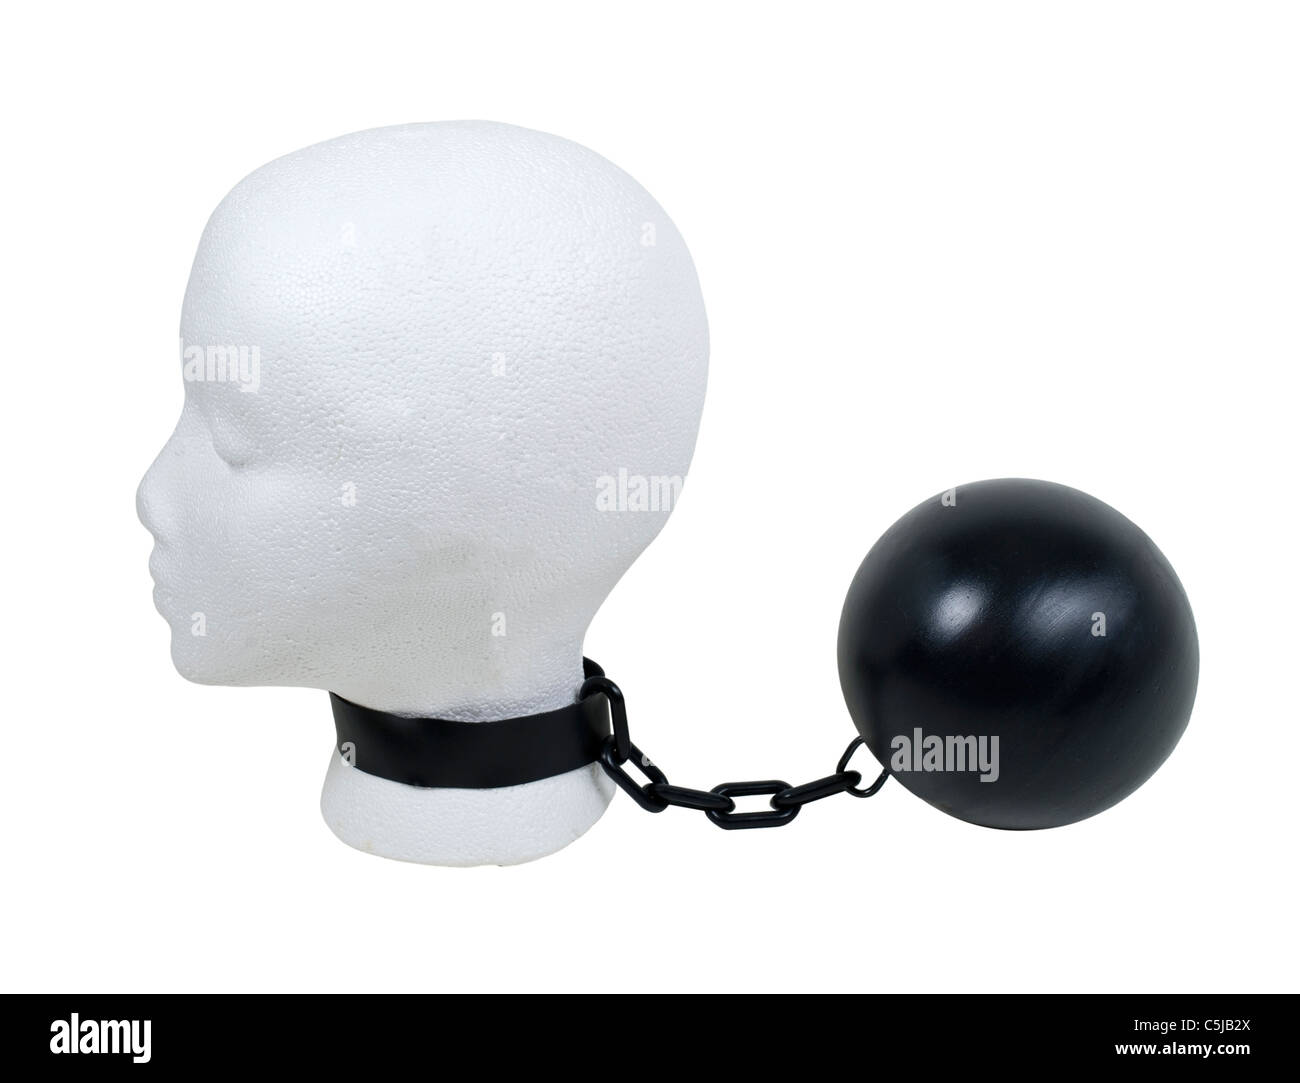 Overcoming struggles shown by a model head with a ball and chain around the neck - path included - Stock Image